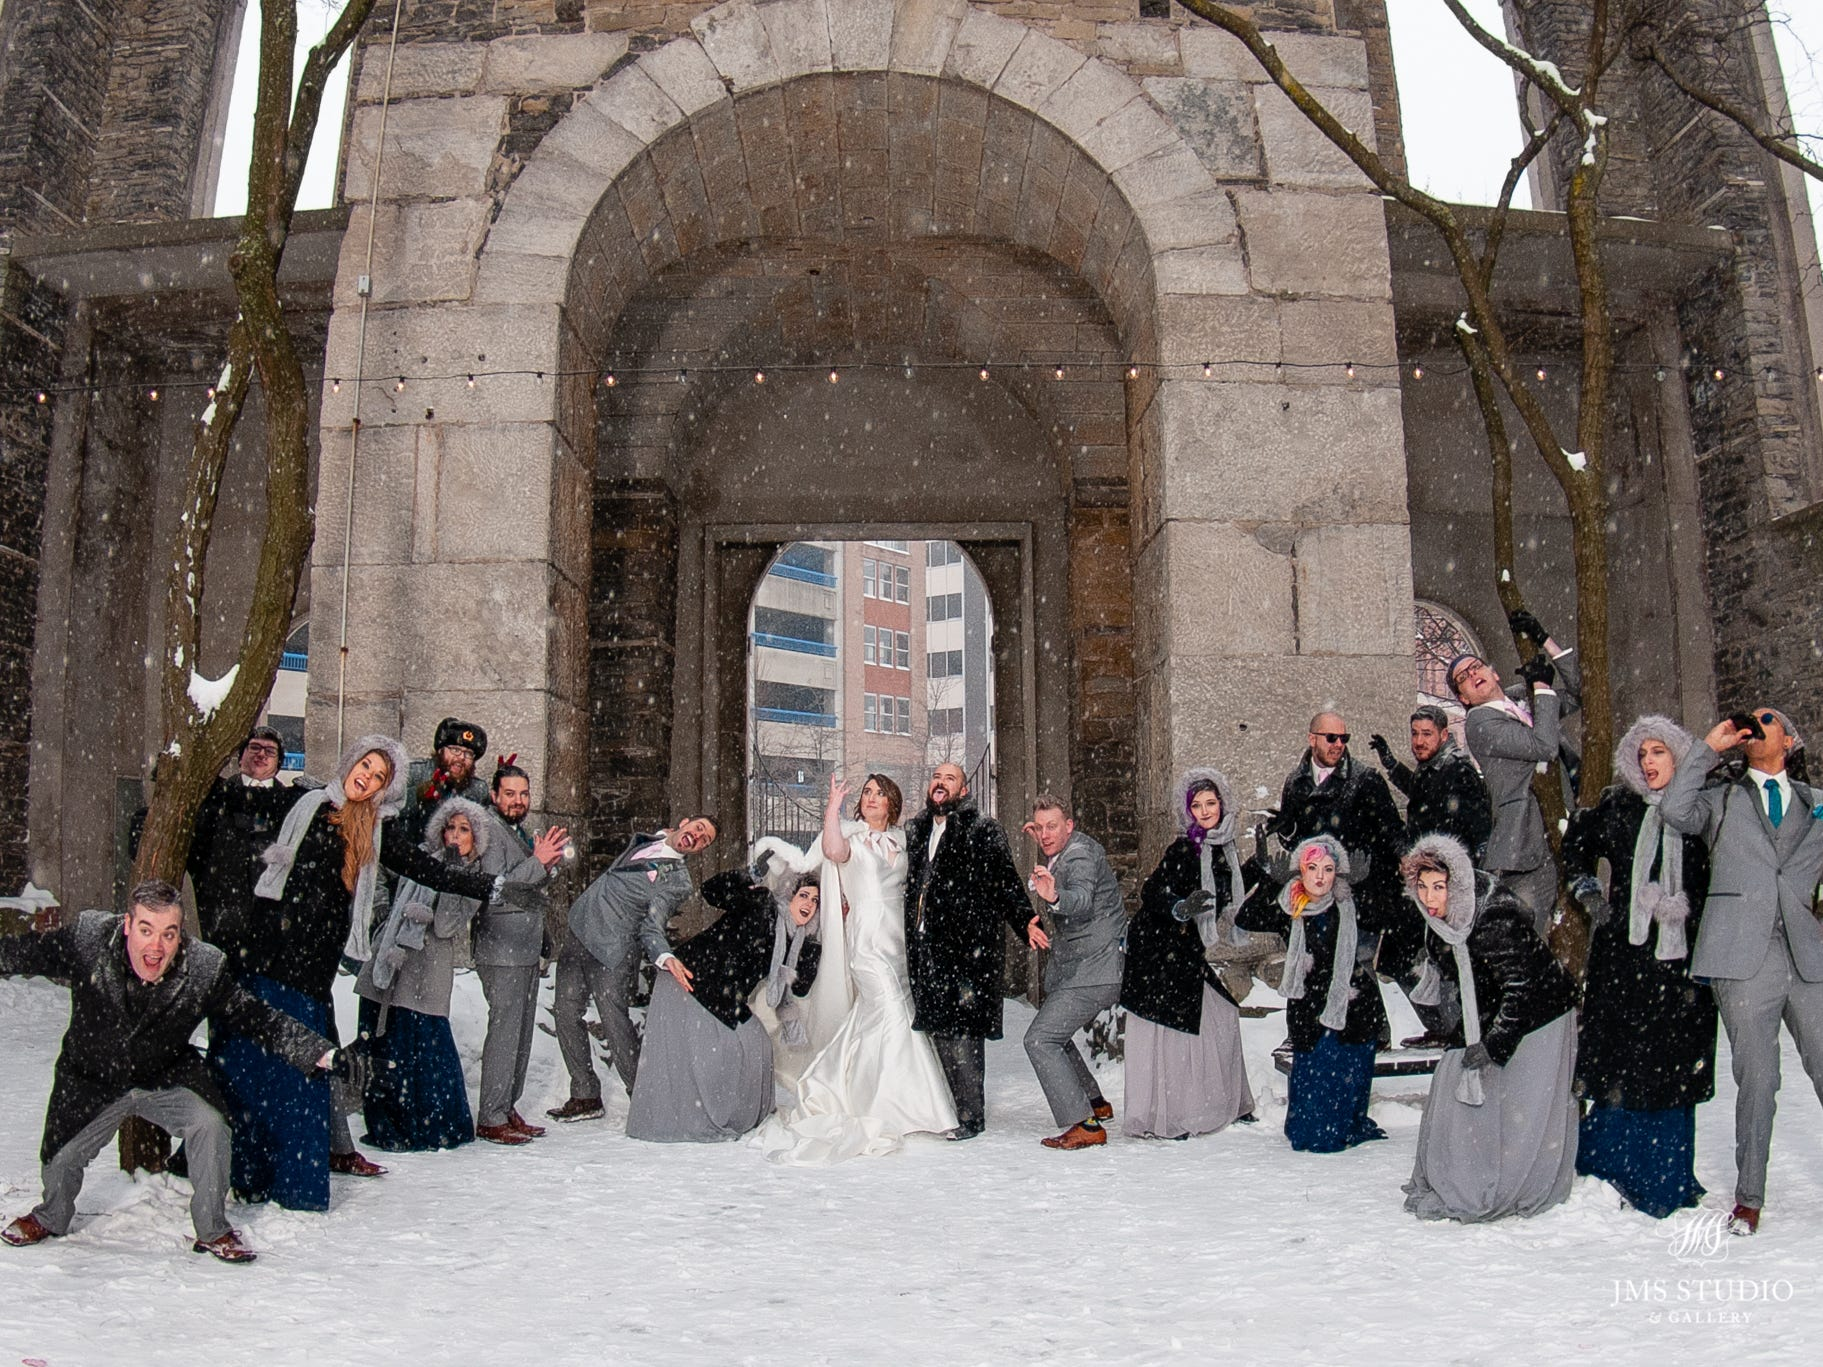 Darla and David Bragg, along with their wedding party, pose in the snow in St. Joseph's Park in downtown Rochester.